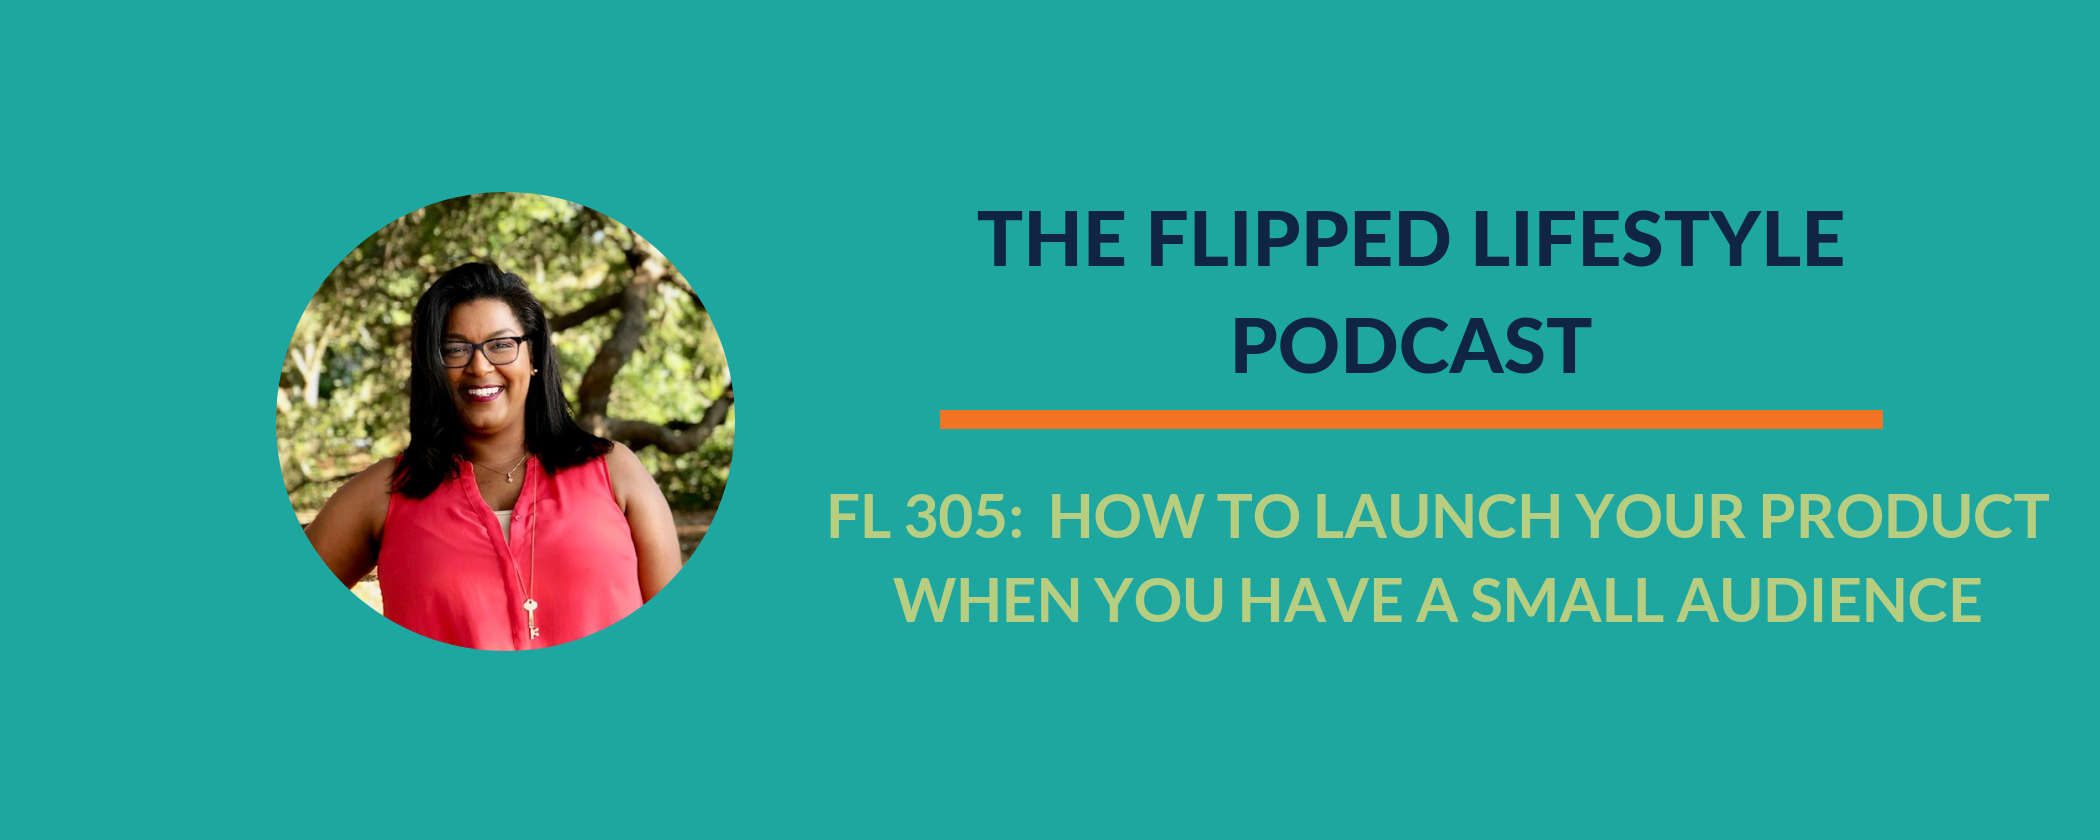 EARLY PODCAST:  FL305 - How to Launch Your Product When You Have a Small Audience